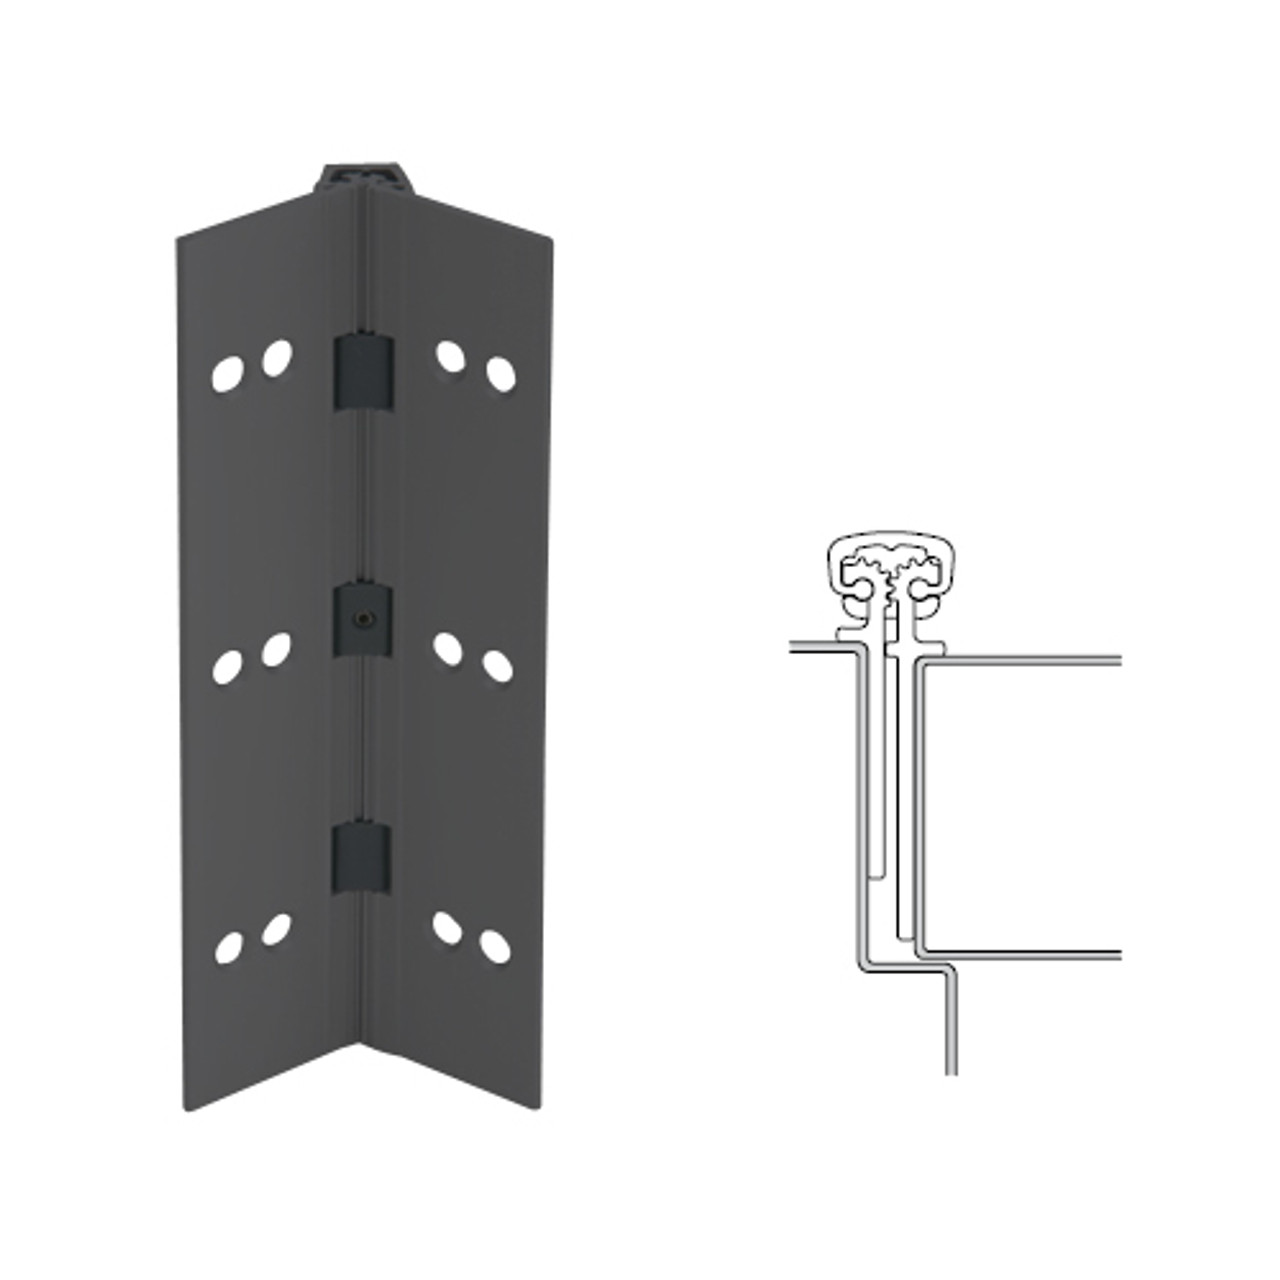 026XY-315AN-95-TF IVES Full Mortise Continuous Geared Hinges with Thread Forming Screws in Anodized Black